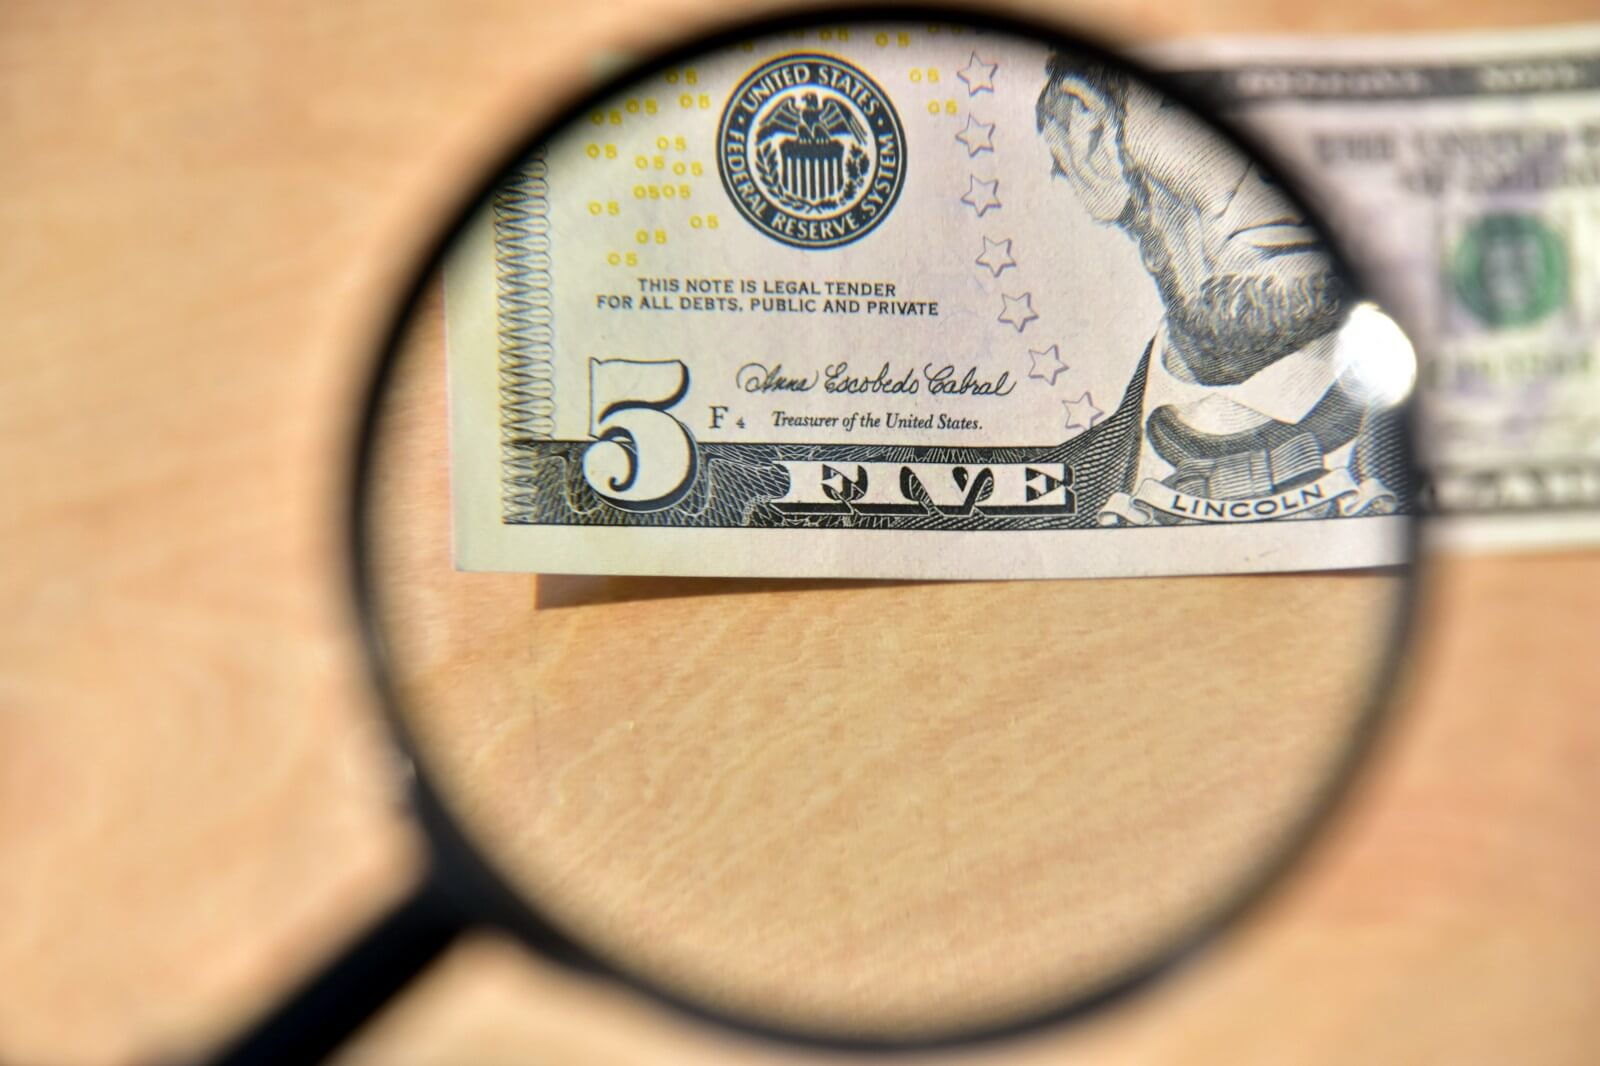 Five dollar bill on wooden table partially viewed through a magnifying glass